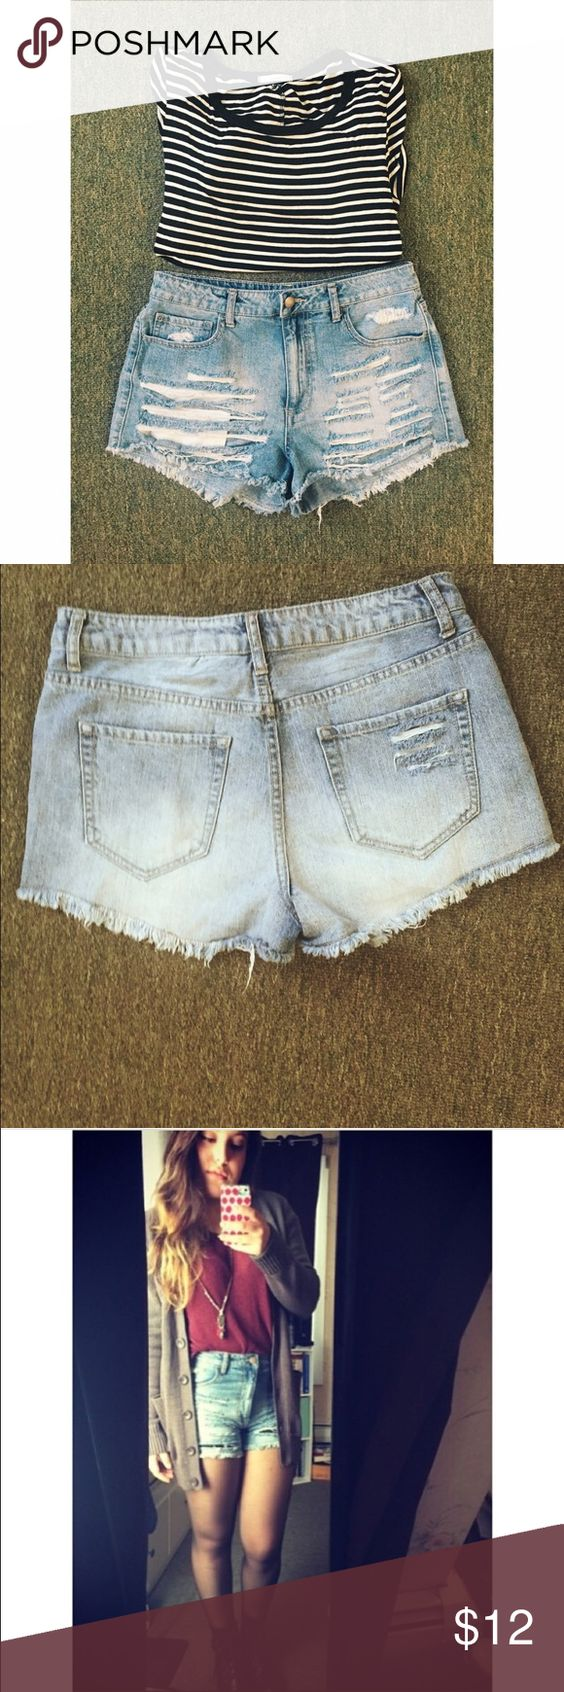 Ripped high waisted shorts. Really cute high wasted shorts that are very versatile. I have even worn in the fall with some black tights and a light sweater. As shown in last picture. Shorts